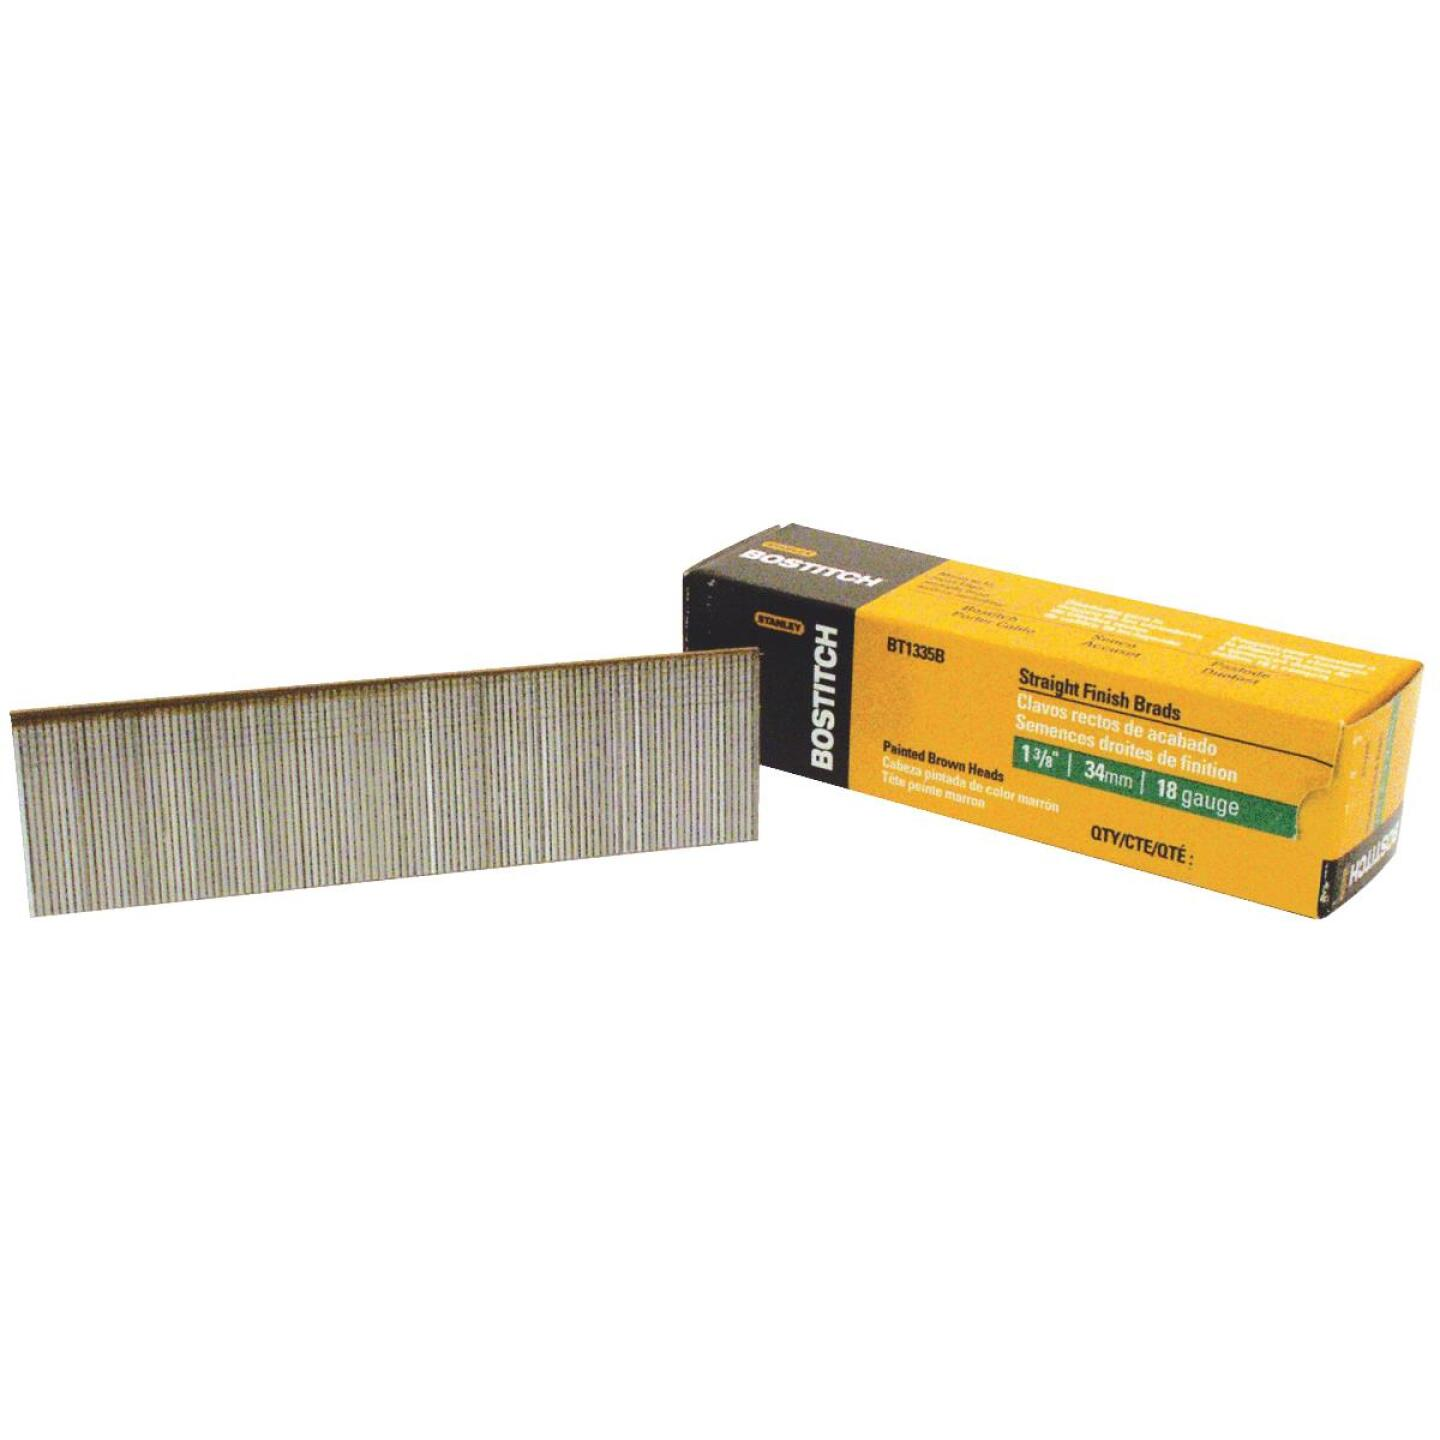 Bostitch 18-Gauge Coated Brad Nail, 1-3/8 In. (3000 Ct.) Image 2